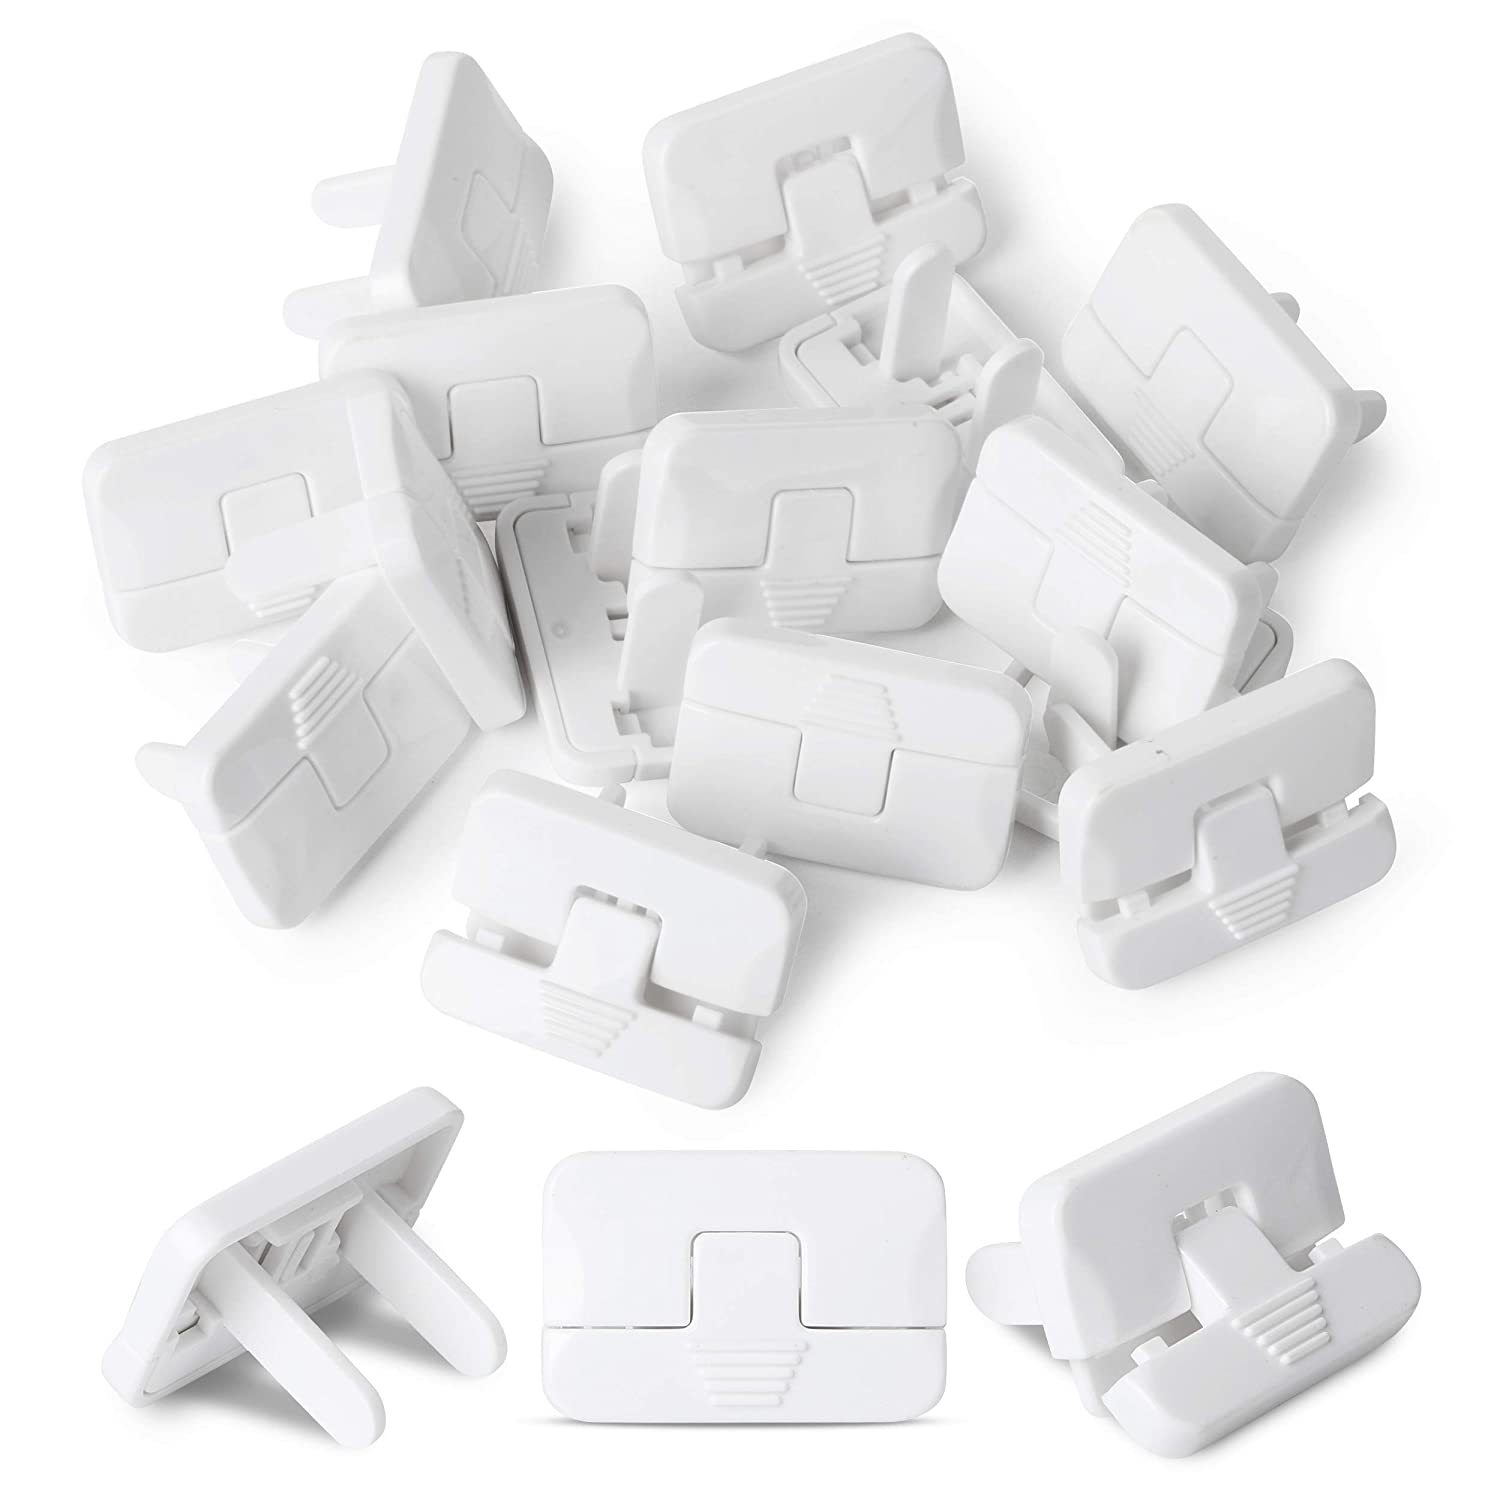 Bates- Outlet Covers, 15 Pack, 2 Prong Outlet Covers, Baby Proof Outlet Covers, Plug Covers for Electrical Outlets, Outlet Plug Covers, Plug Covers, Baby Outlet Covers, Child Safety Outlet Covers